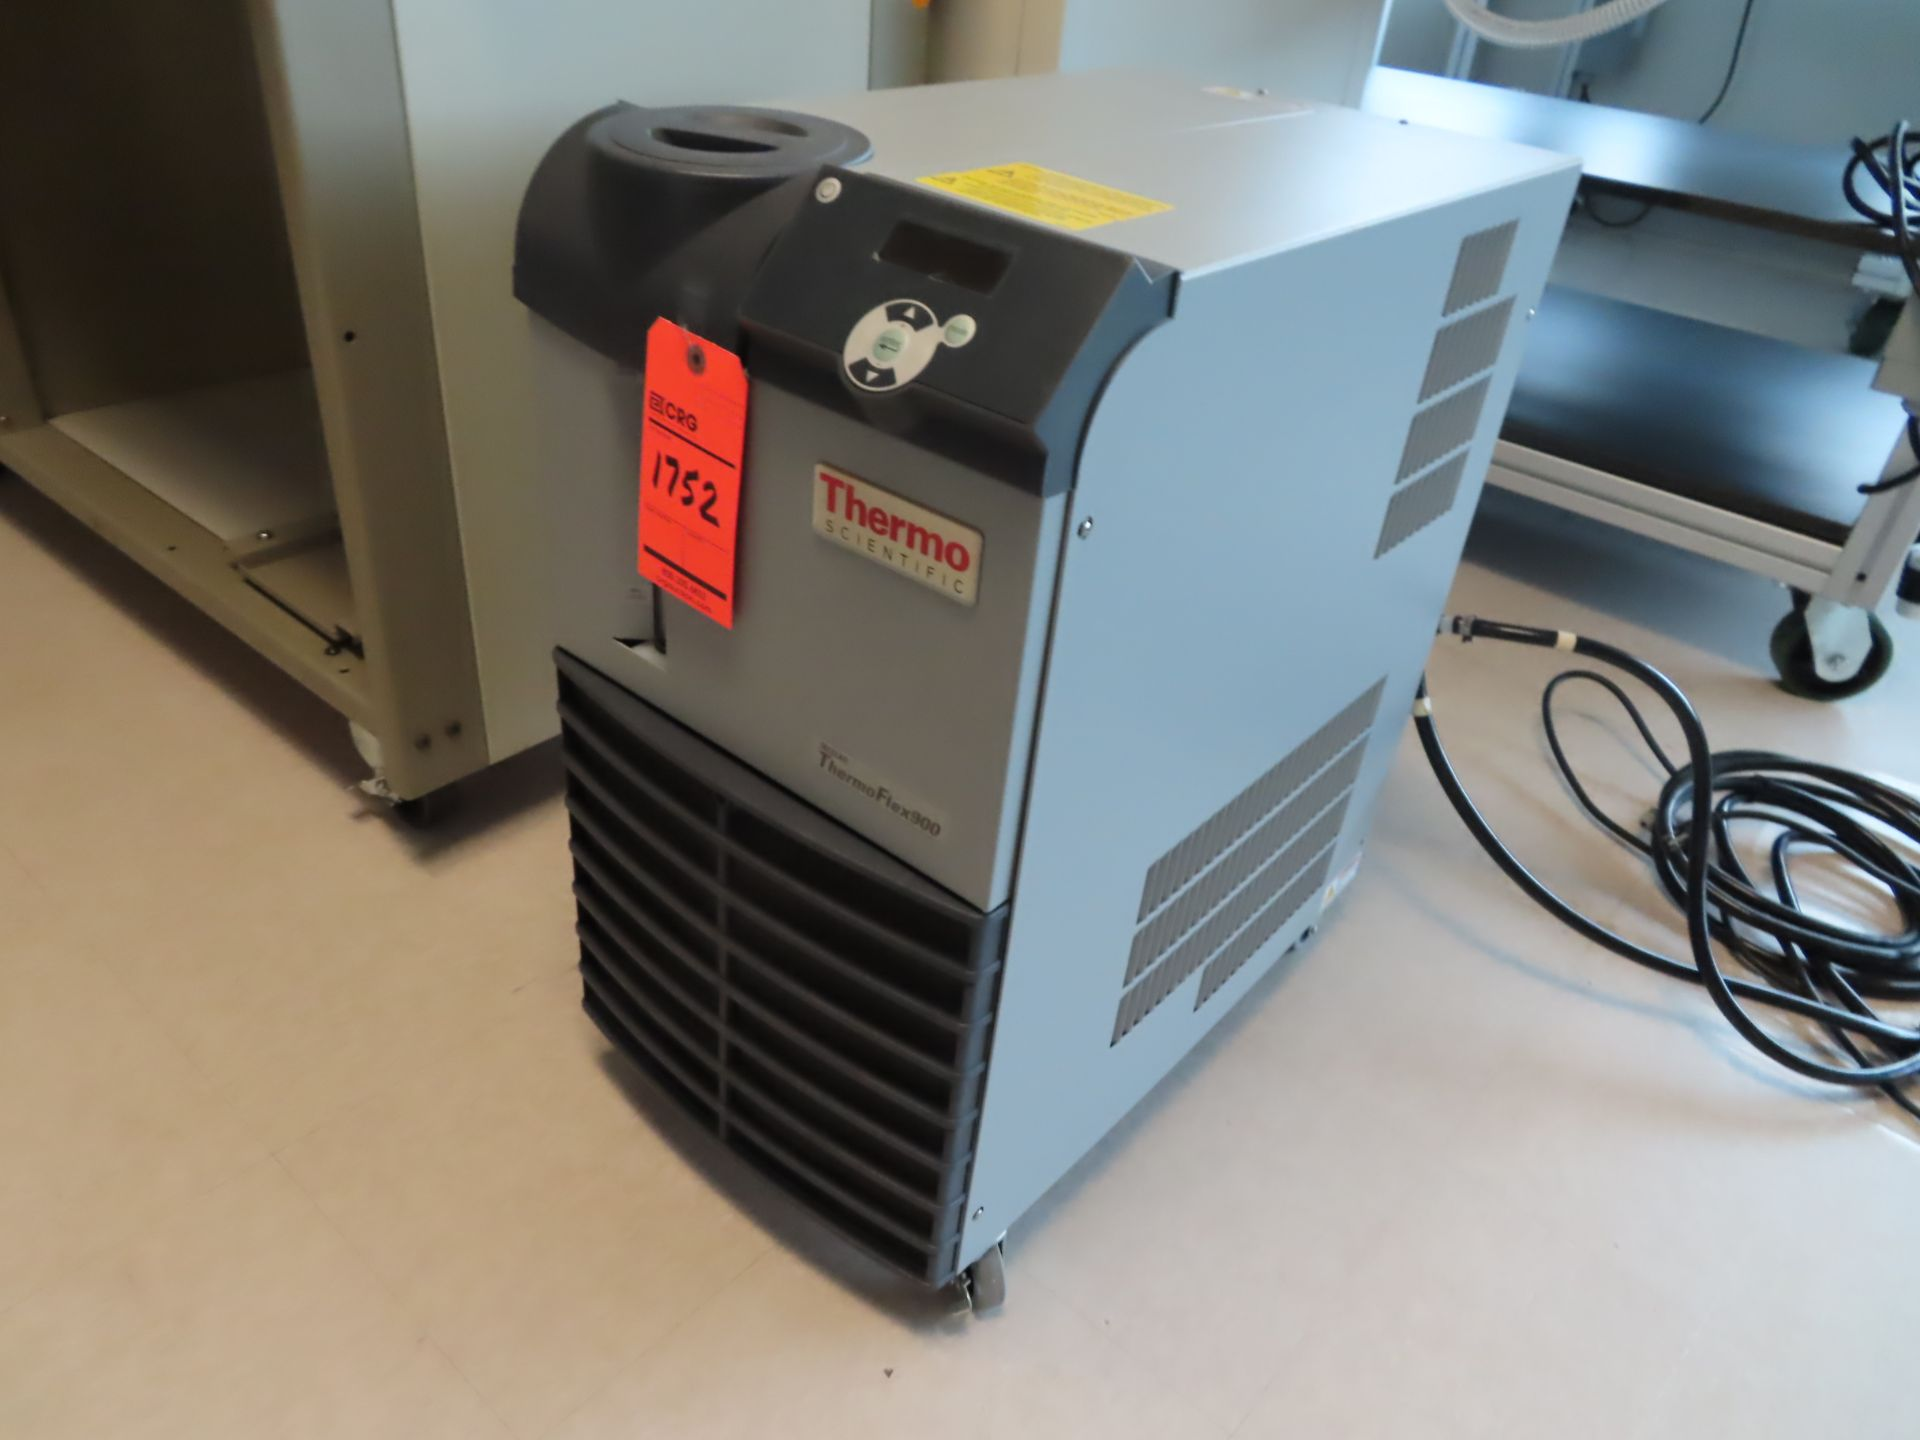 Lot 1752 - Thermo NesLab Thermoflex 900 chiller, located in B wing, 4th floor, room 449L